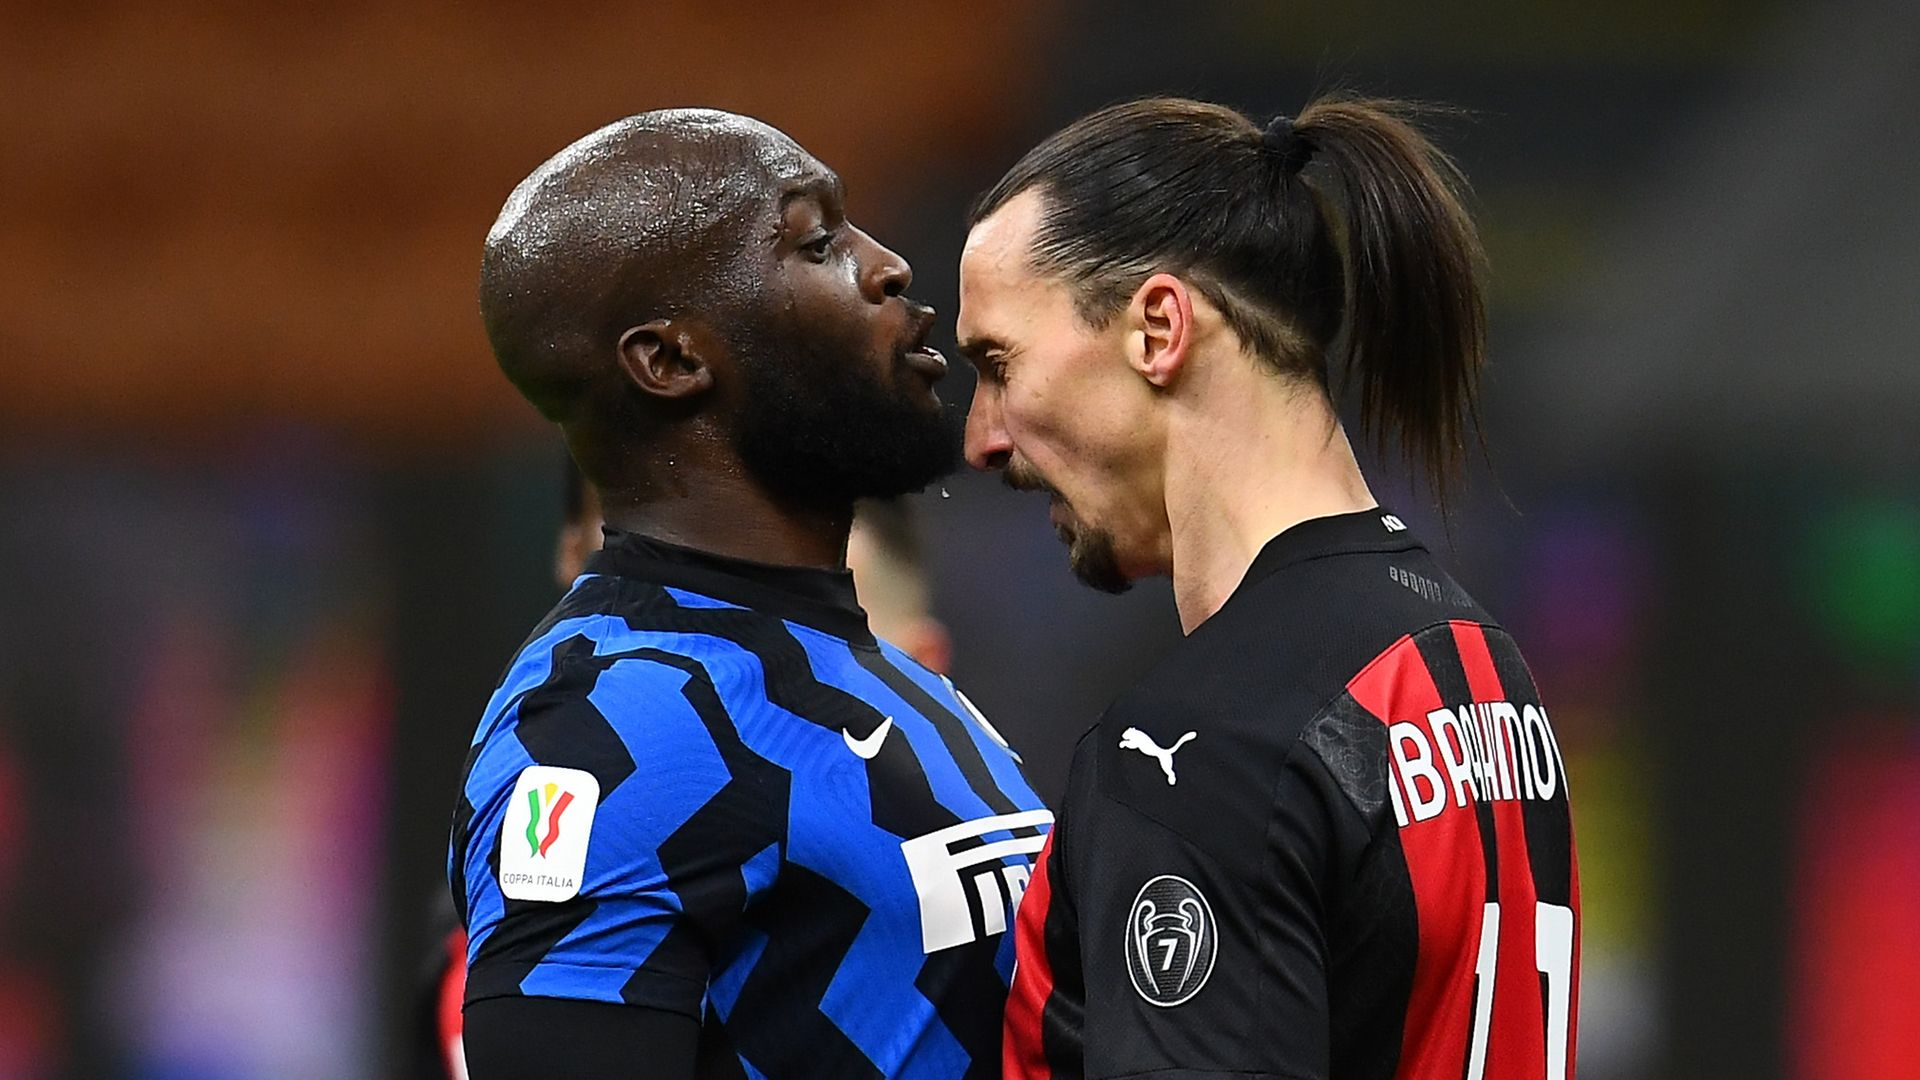 Romelu Lukaku of Internazionale clashes with Zlatan Ibrahimovic of AC Milan during the Coppa Italia match between their sides at the Stadio Giuseppe Meazza - Credit: Inter via Getty Images